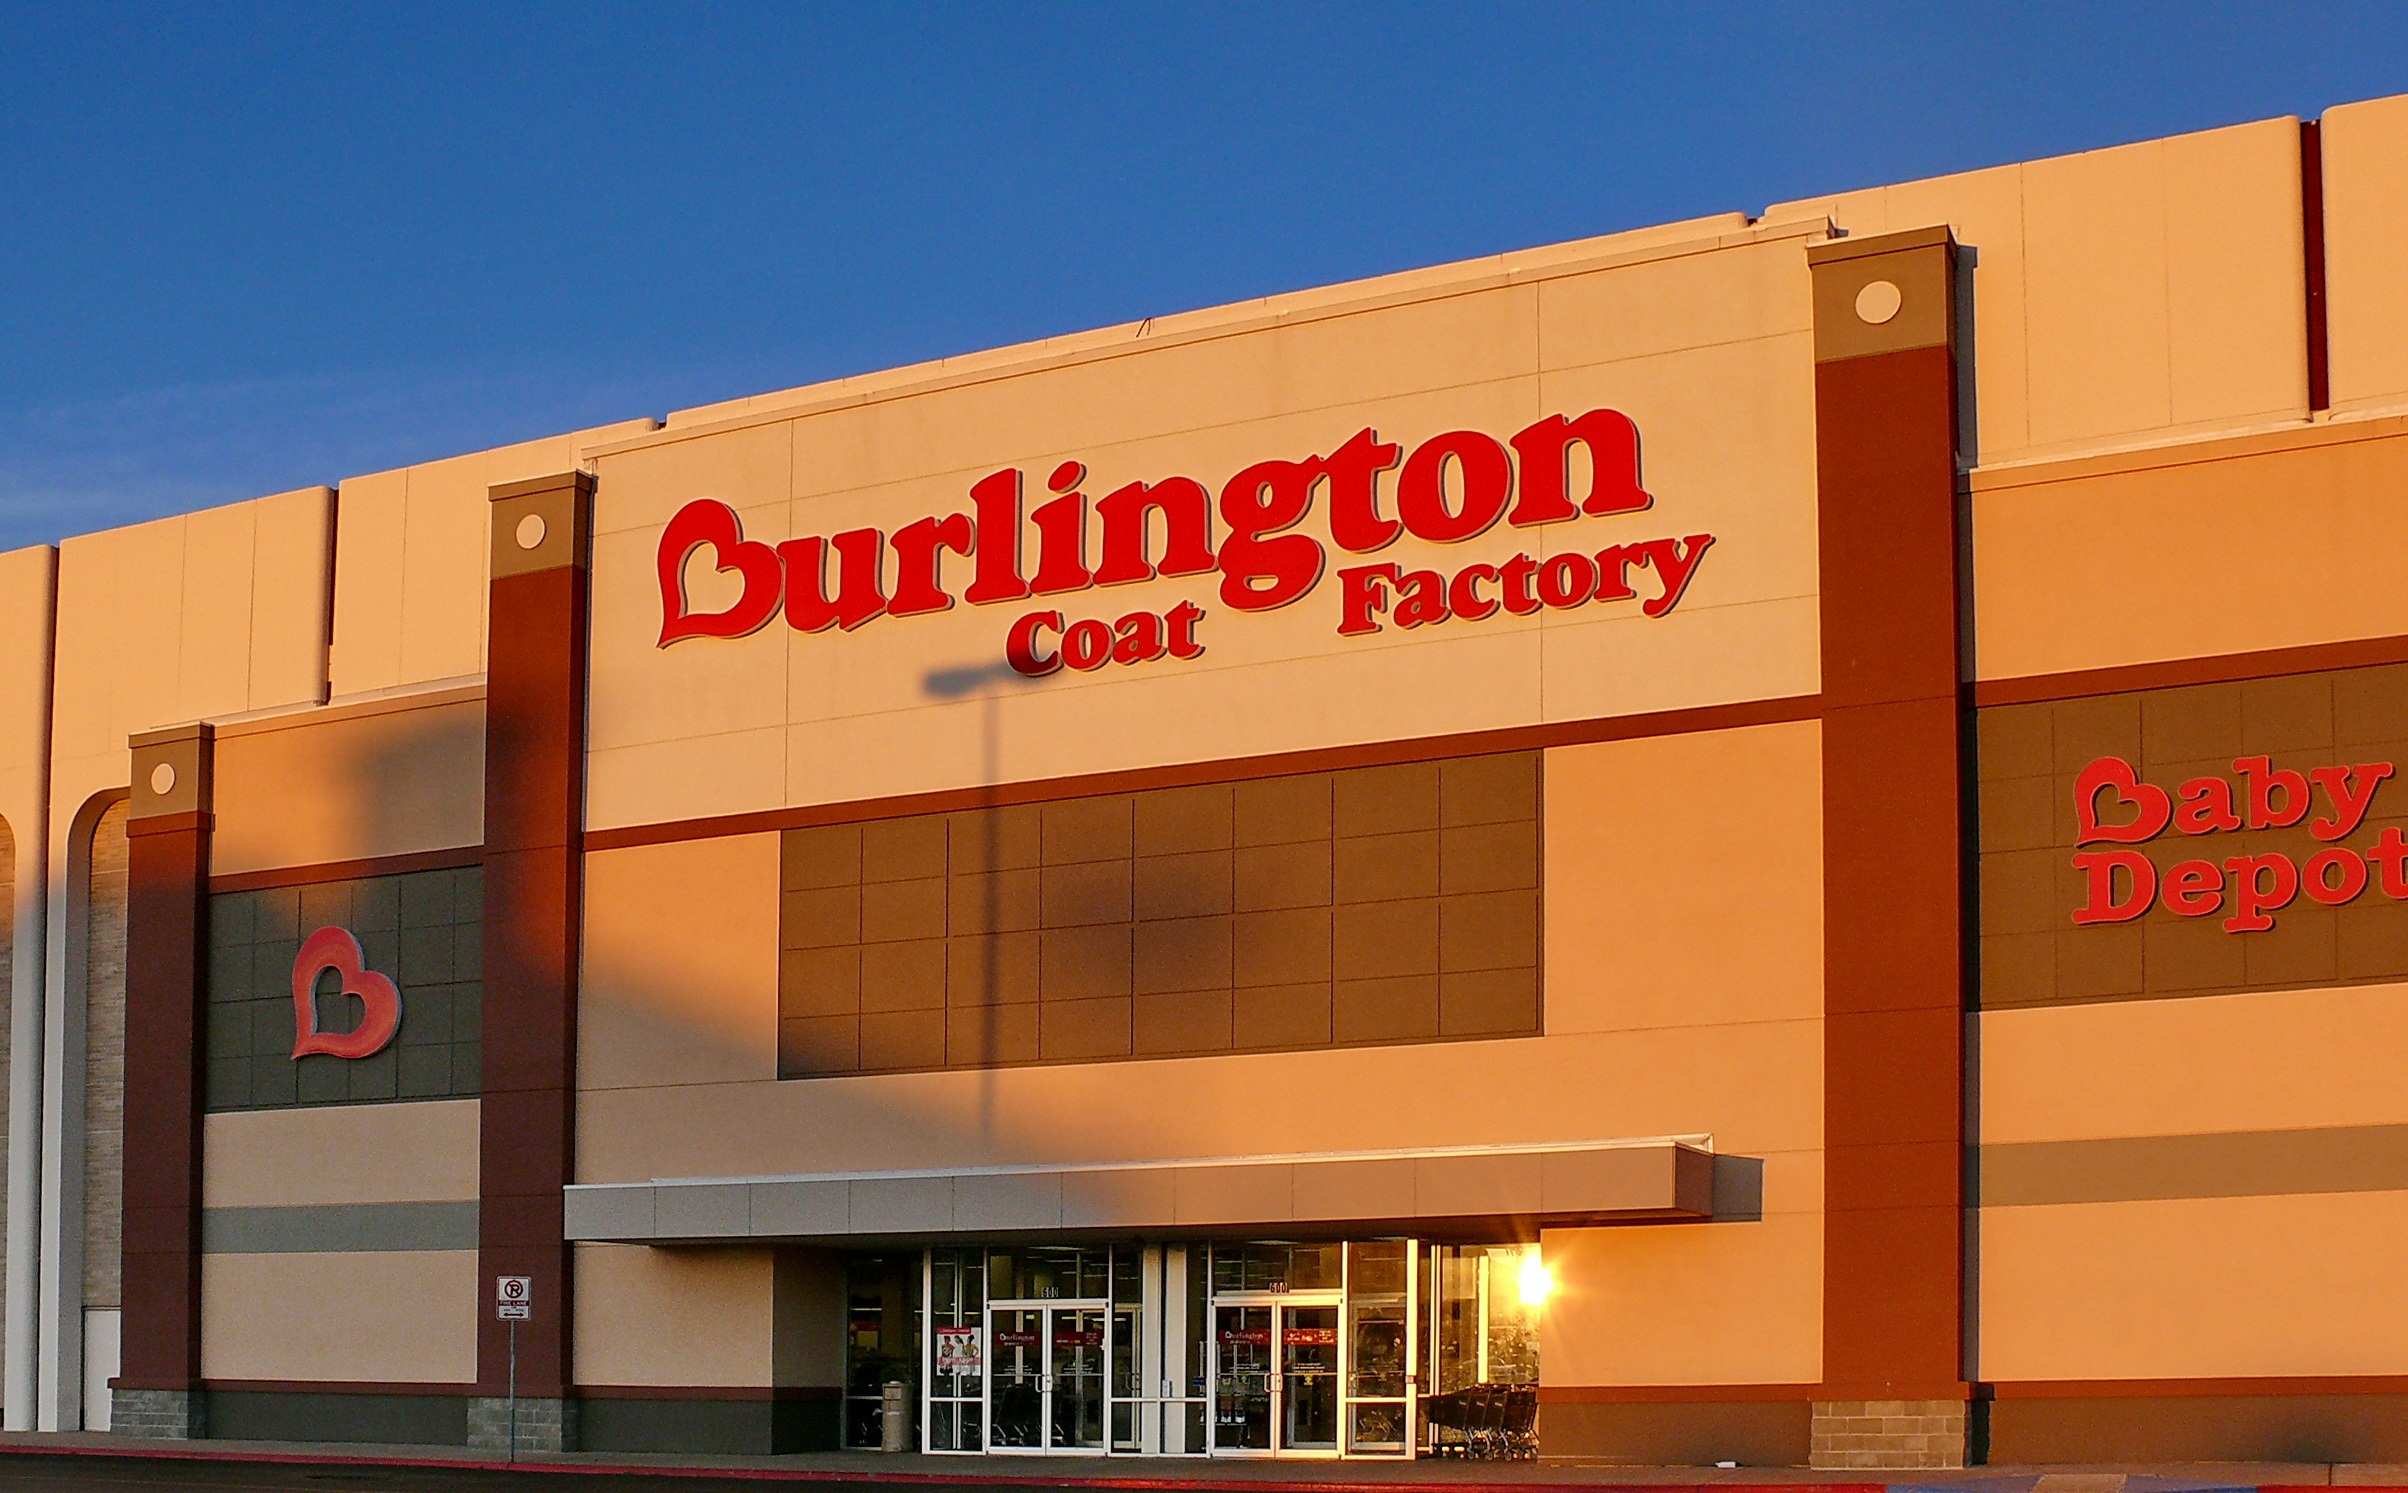 What We Offer. Burlington is a leading off-price apparel and home product retailer. We operate stores in 45 states and Puerto Rico, where you'll find a large assortment of current, high-quality, designer and name-brand merchandise at up to 65% off other retailers' prices.